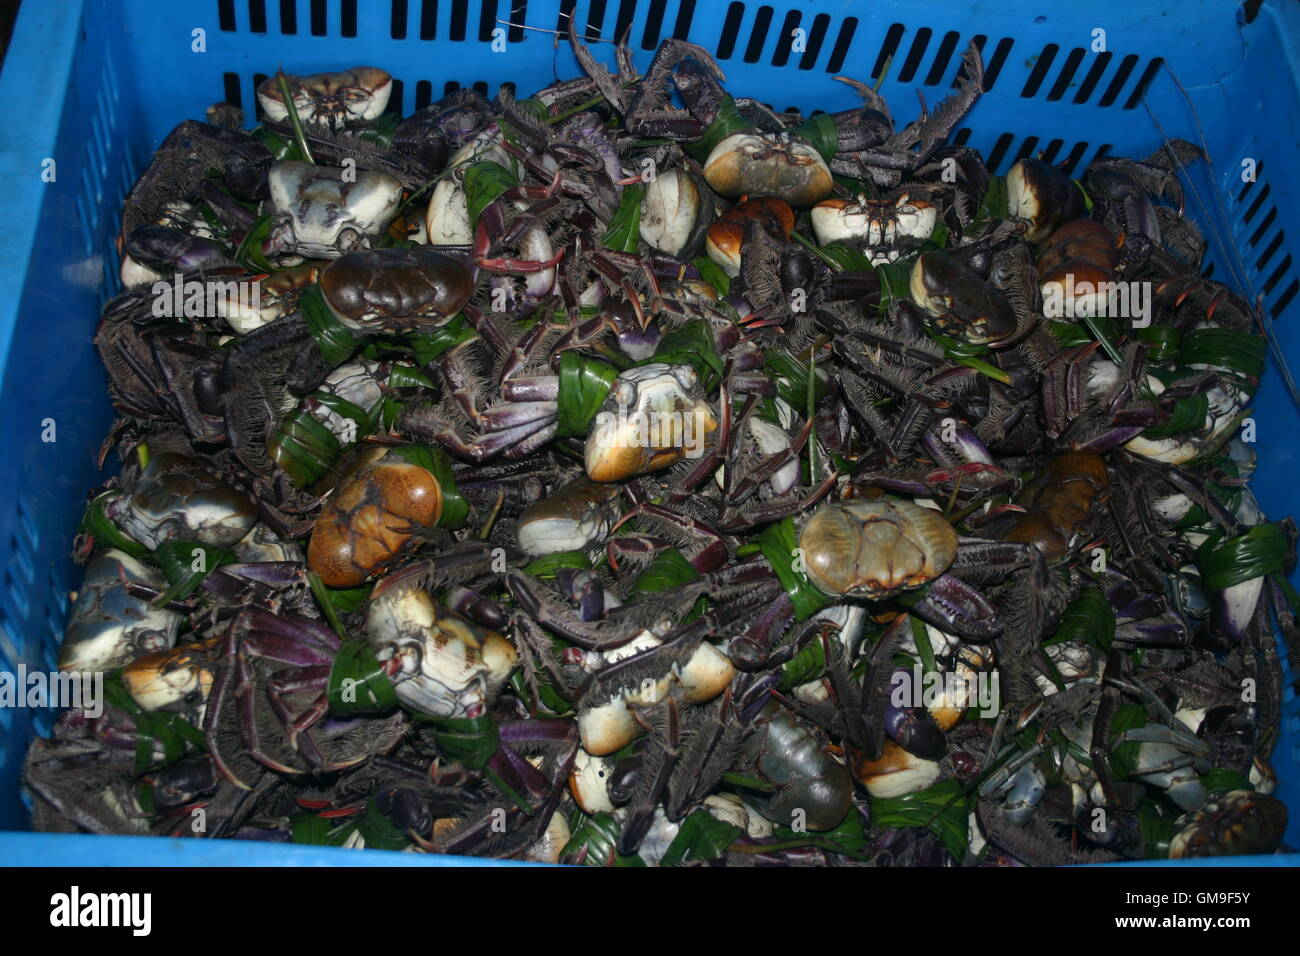 crabs for sale - Stock Image